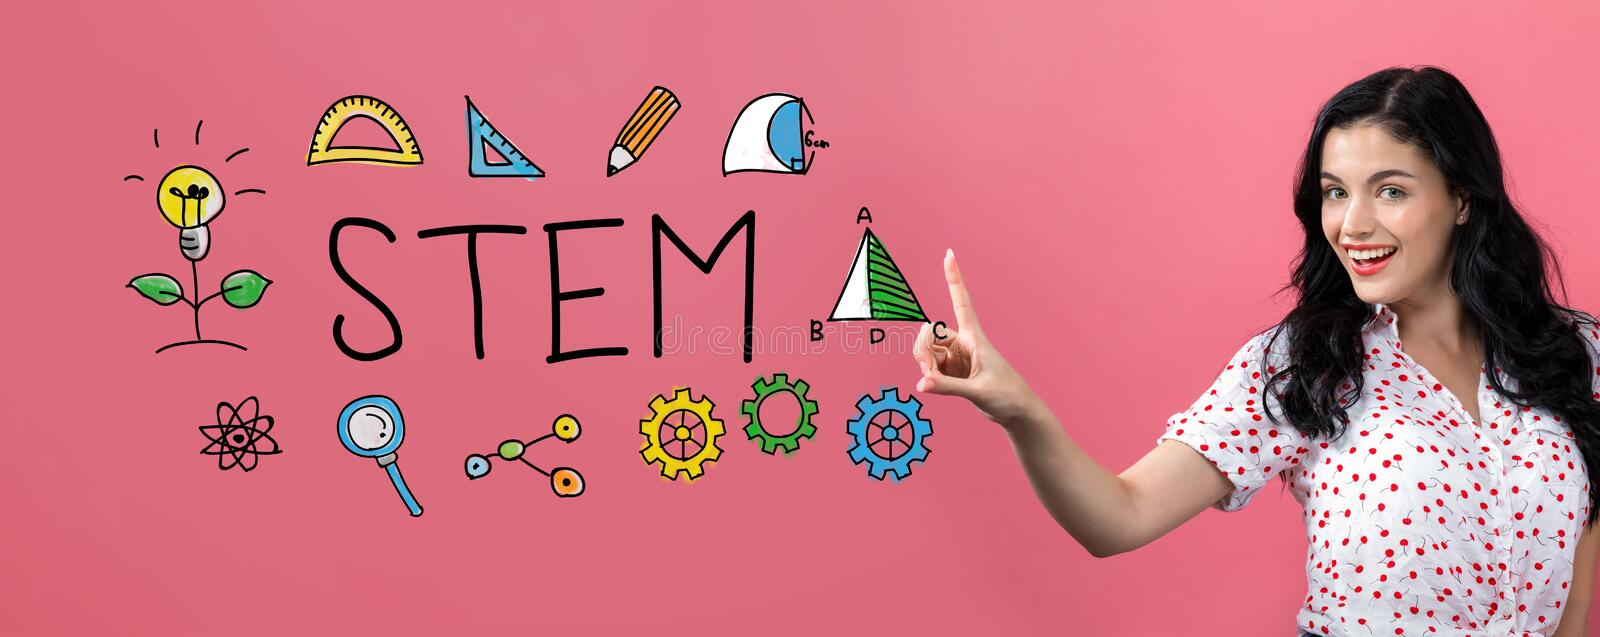 STEM with young woman royalty free stock photo